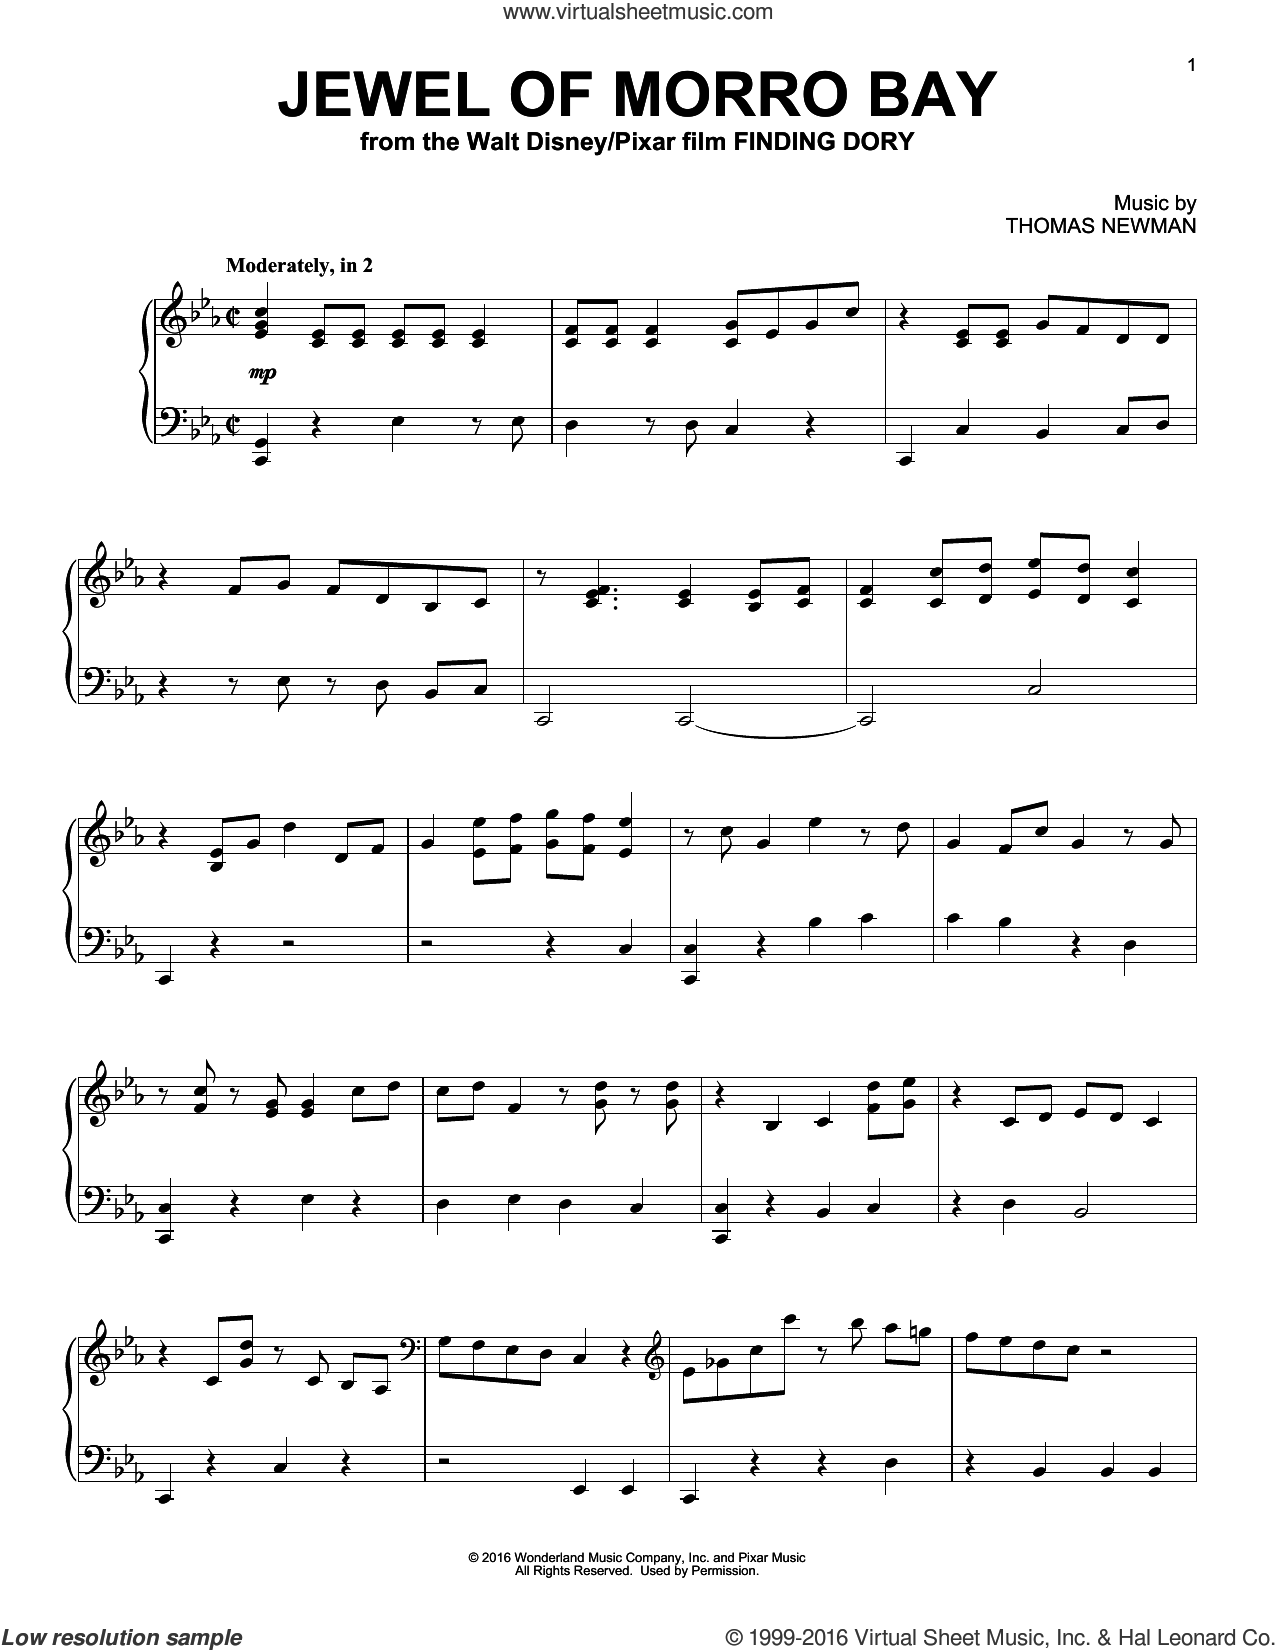 Jewel Of Morro Bay sheet music for piano solo by Thomas Newman, intermediate skill level